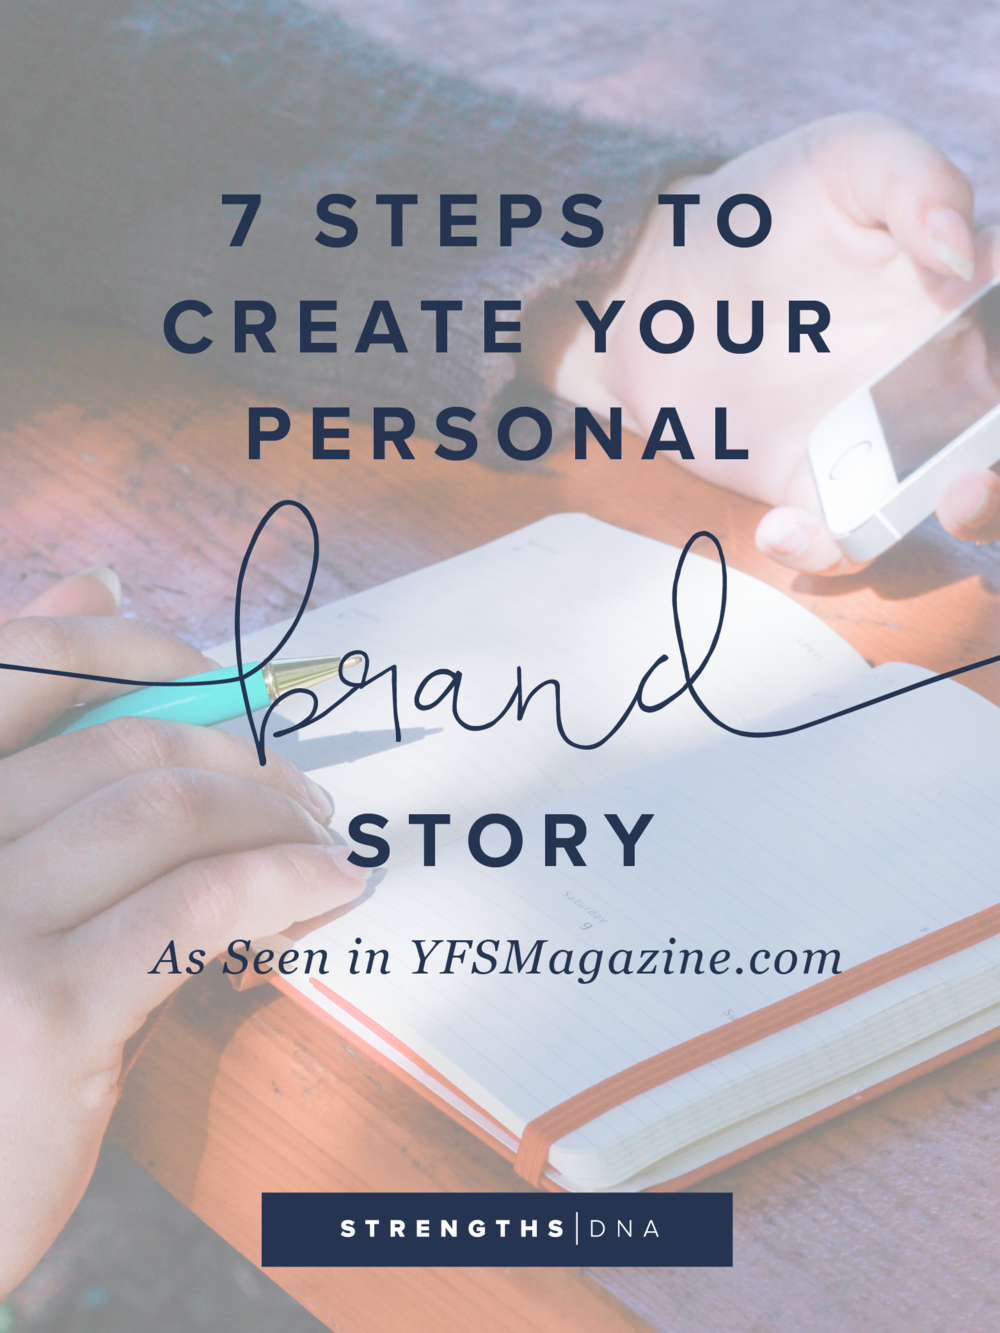 7 Steps to Create Your Personal Brand Story - As seen in YFSMagazine.com